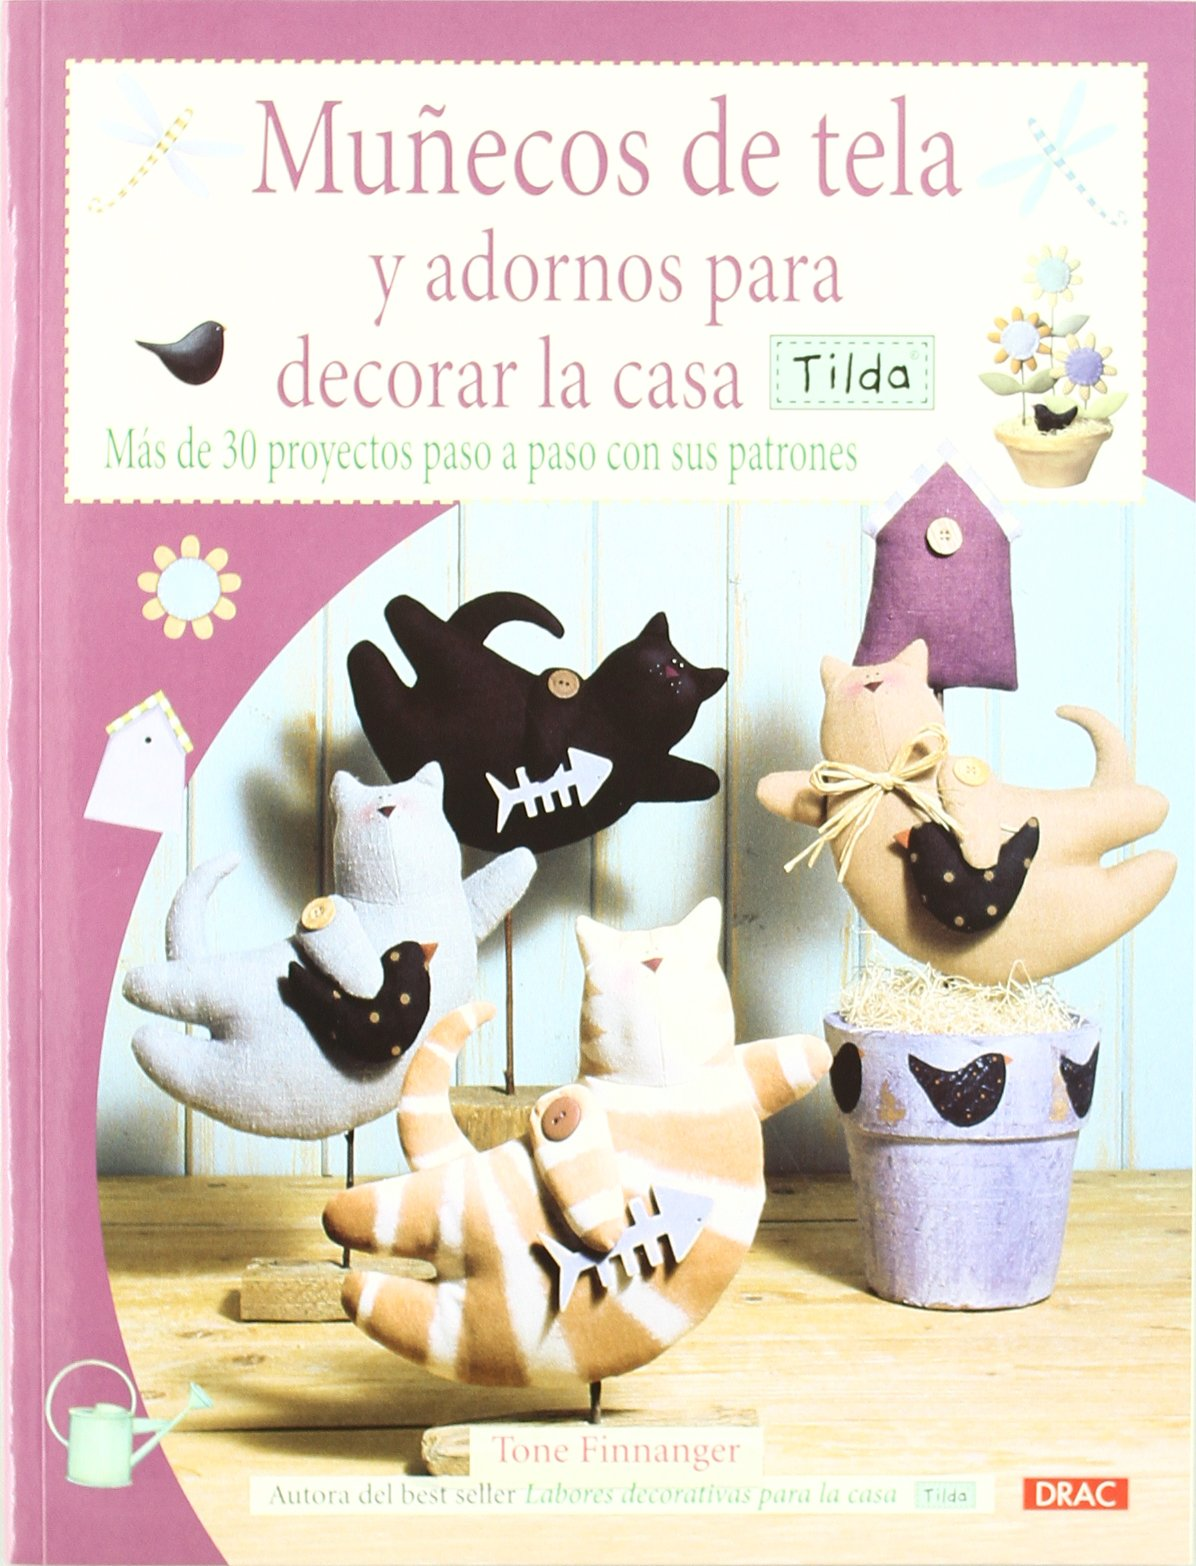 Munecos de tela y adornos para la casa / Cloth dolls and decorations for home: Tilda (Spanish Edition) (Spanish) Paperback – September 1, 2011